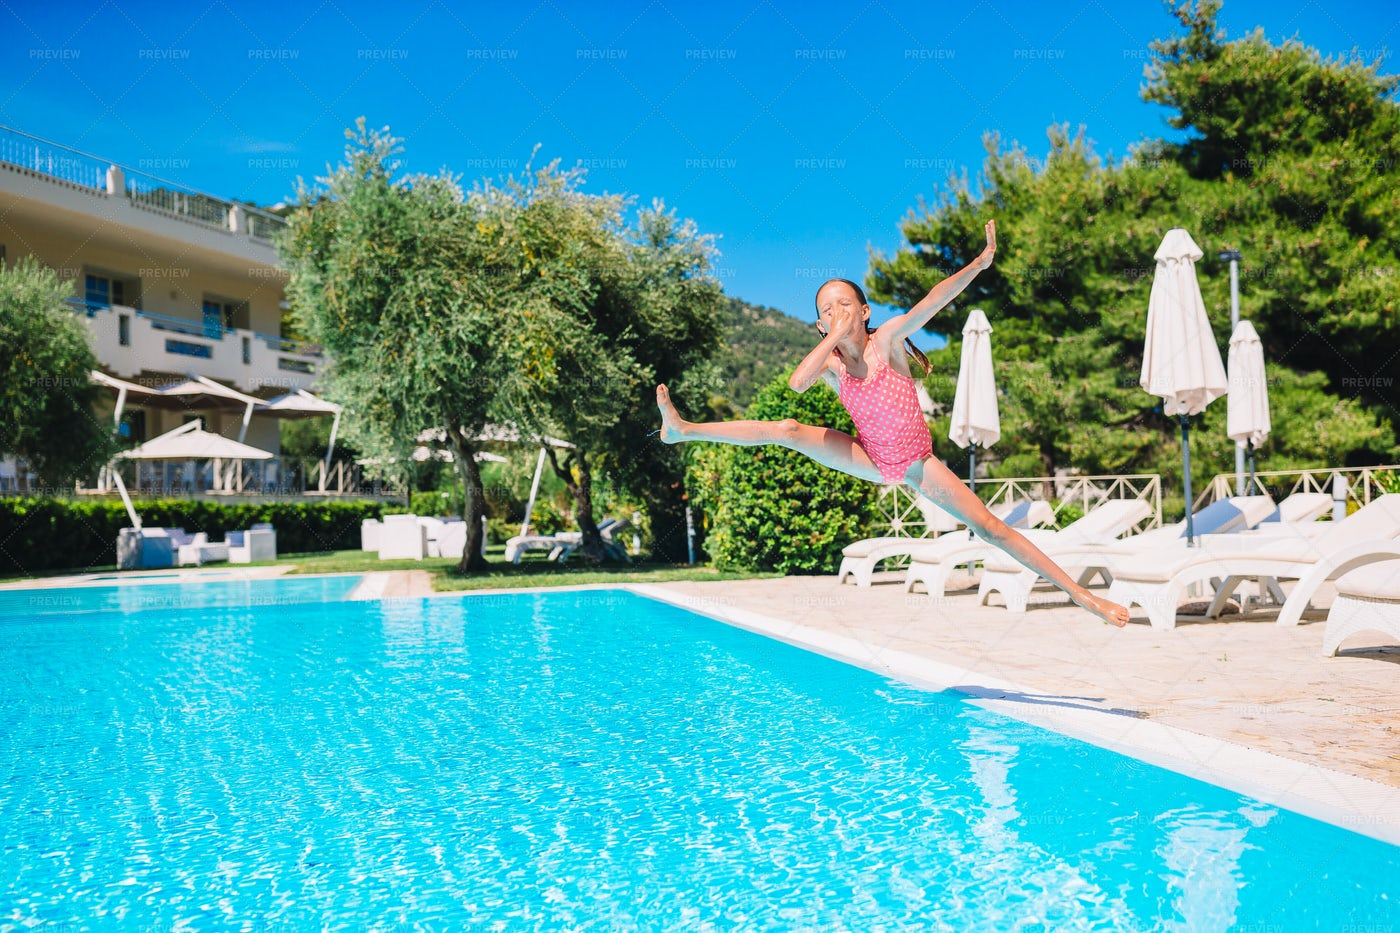 Jumping Into The Pool: Stock Photos